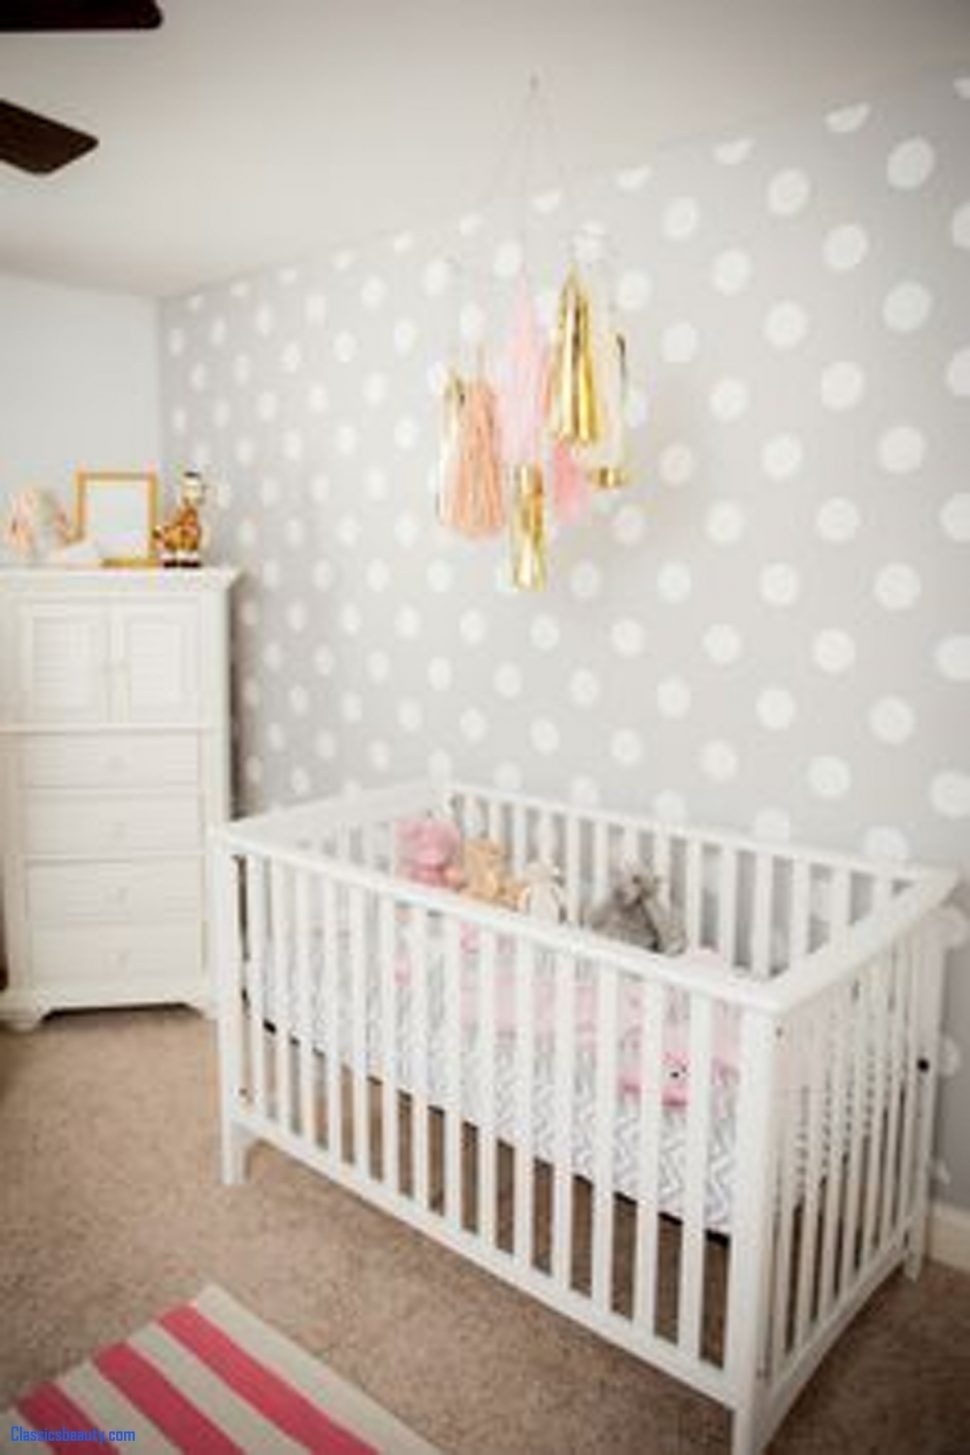 Wall Decor : Baby Girl Room Nursery Room Decor Baby Boy Nursery Intended For Latest Nursery Wall Accents (View 12 of 15)